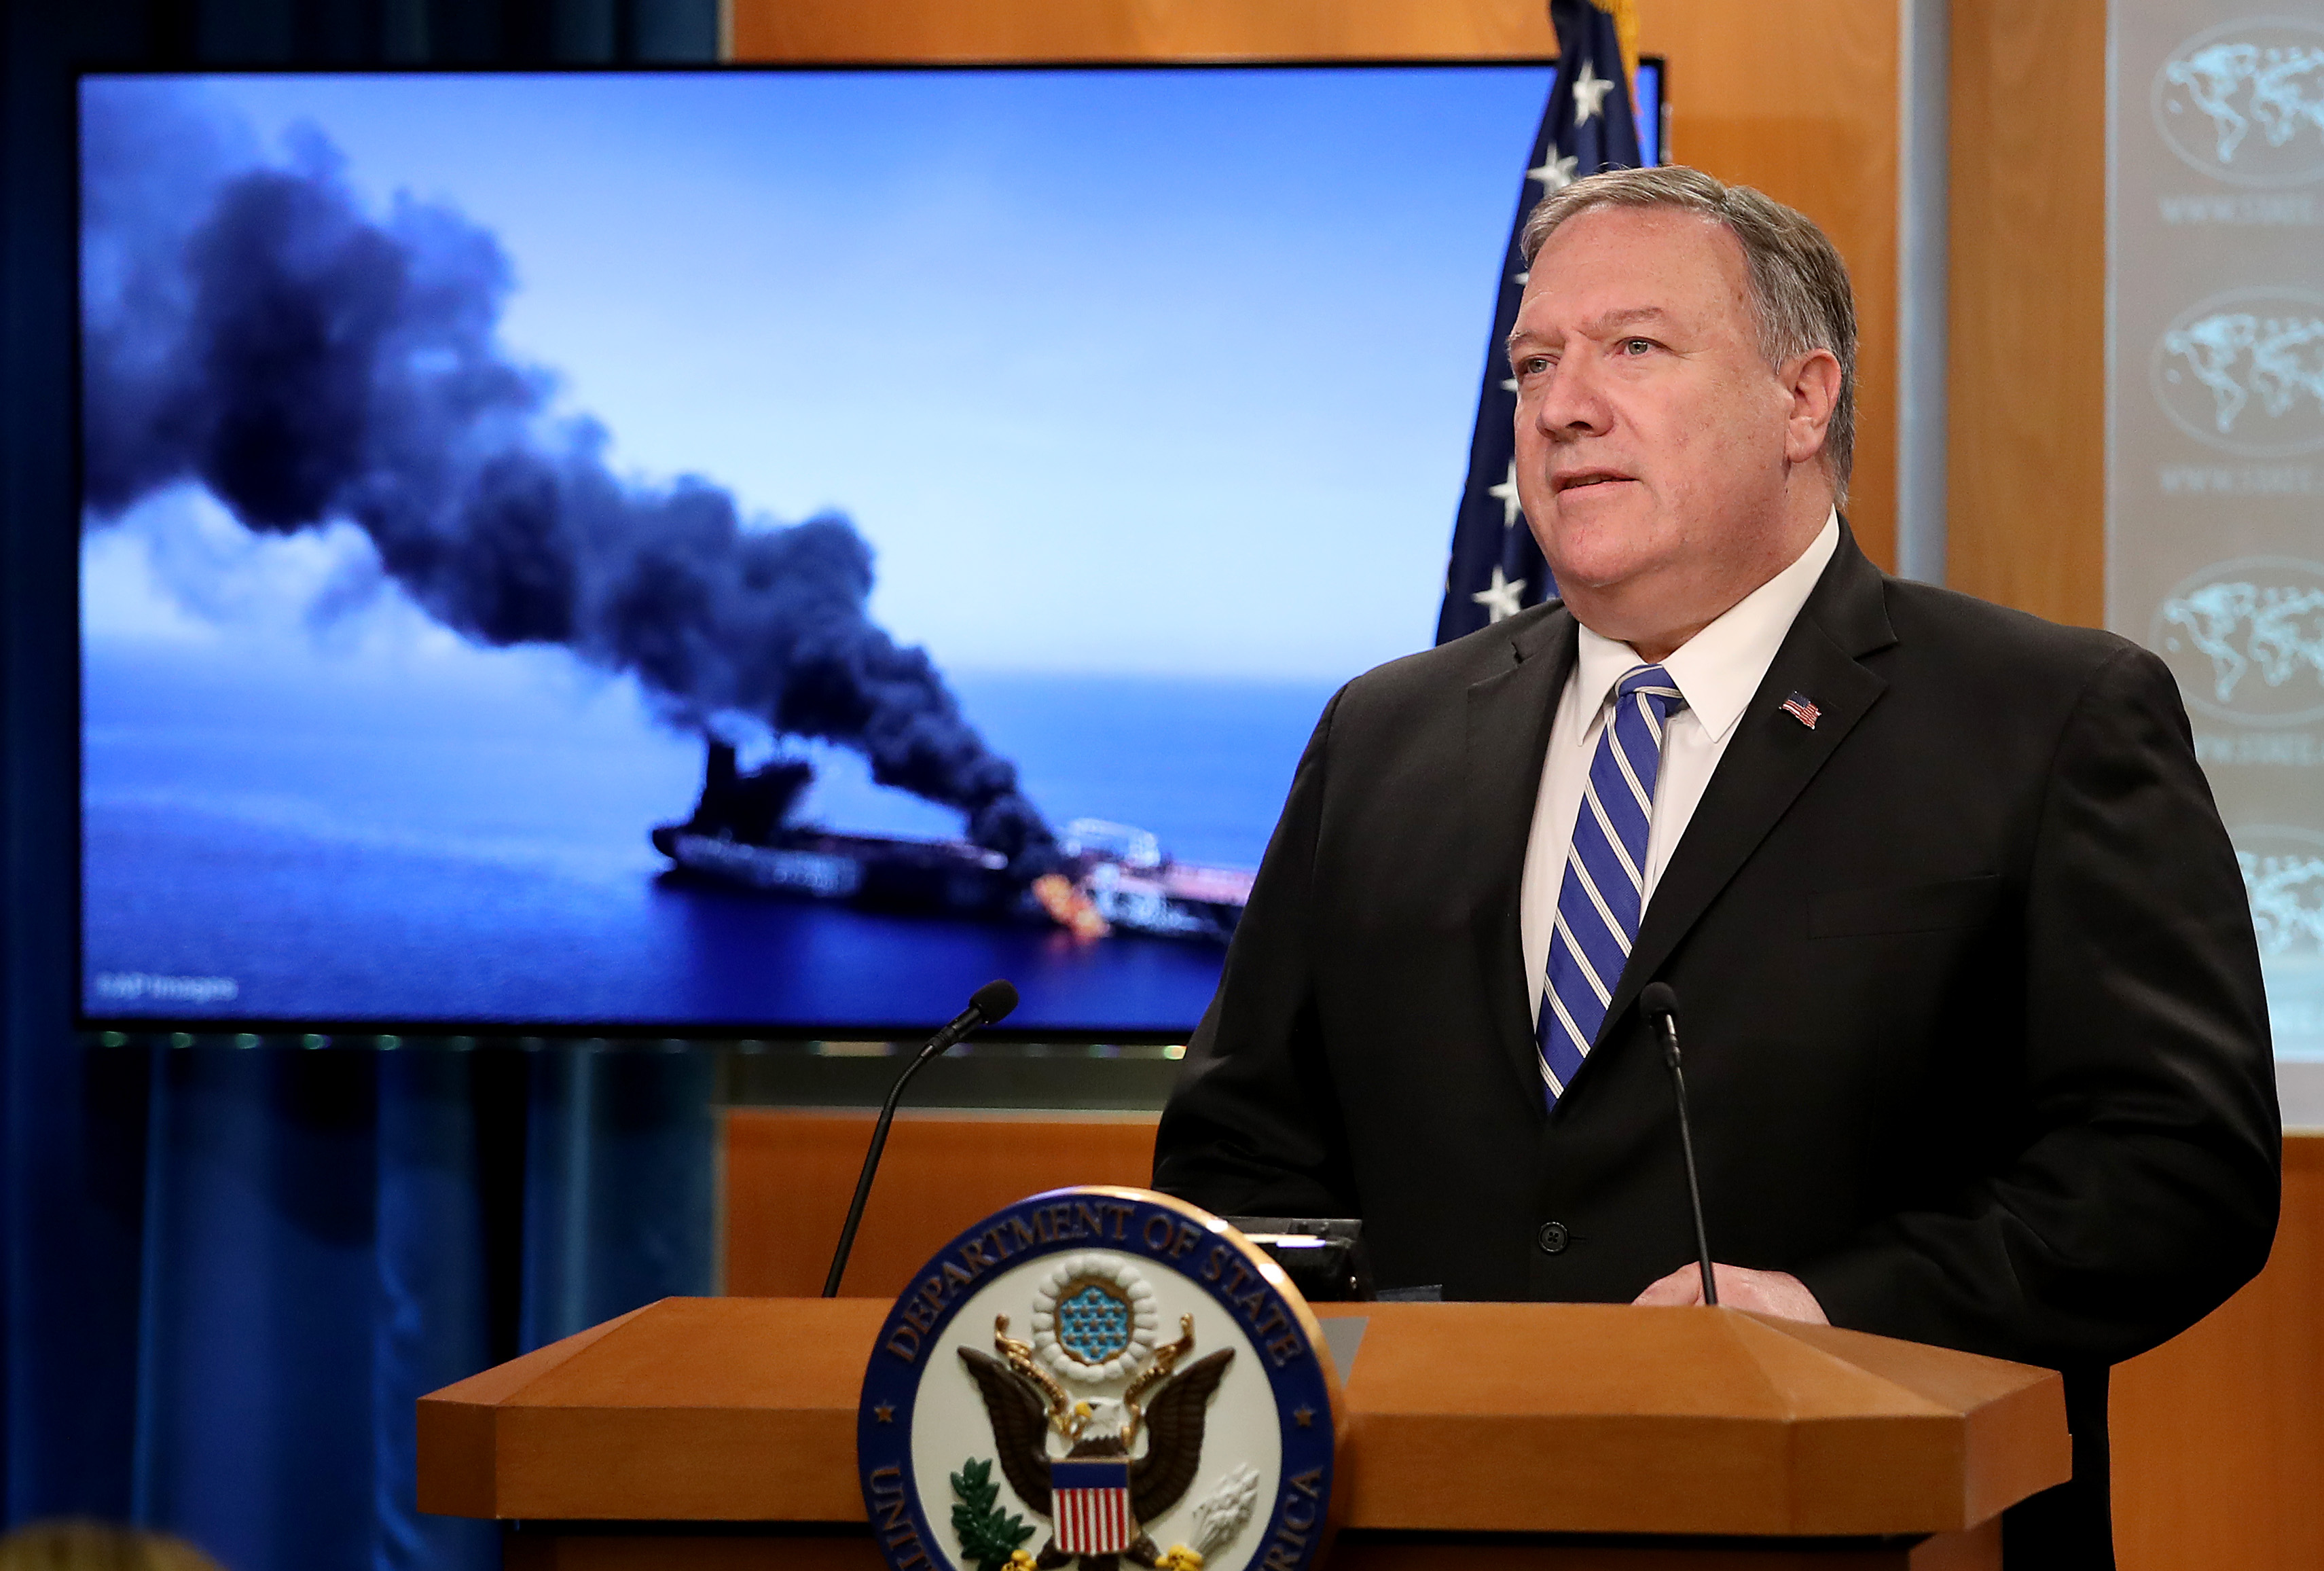 Live updates: US blames Iran for Gulf of Oman attack